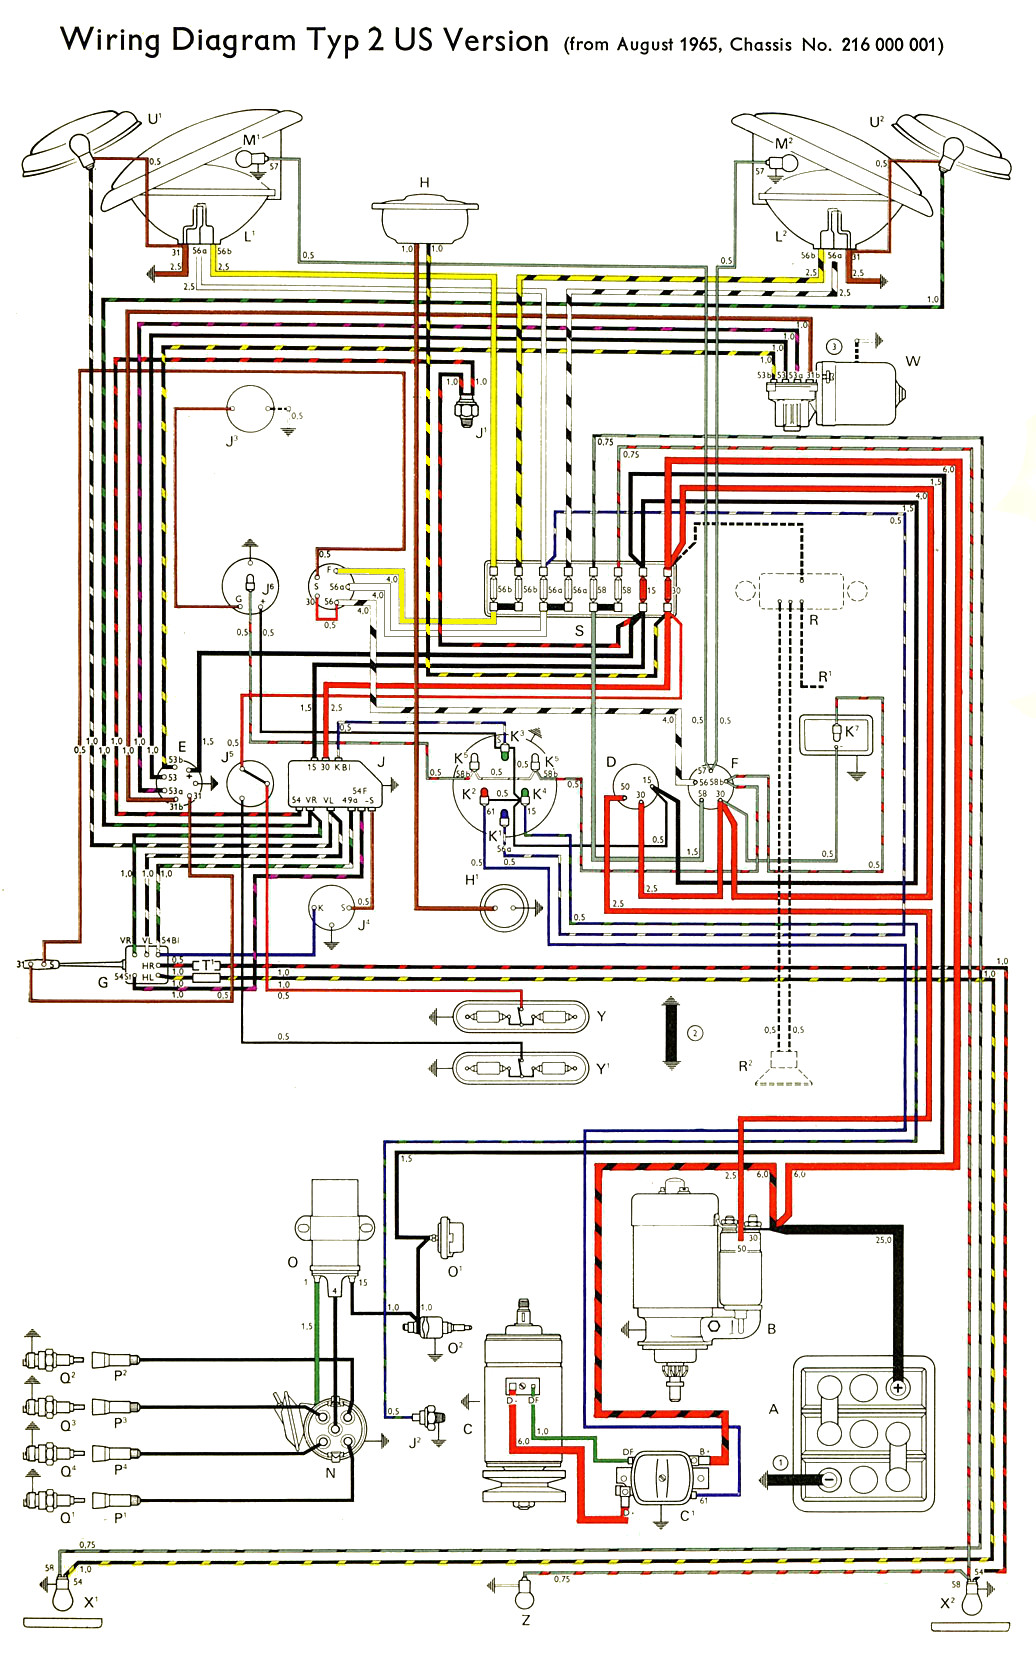 2000 vw bug fuse diagram 66 vw bug wire diagram of